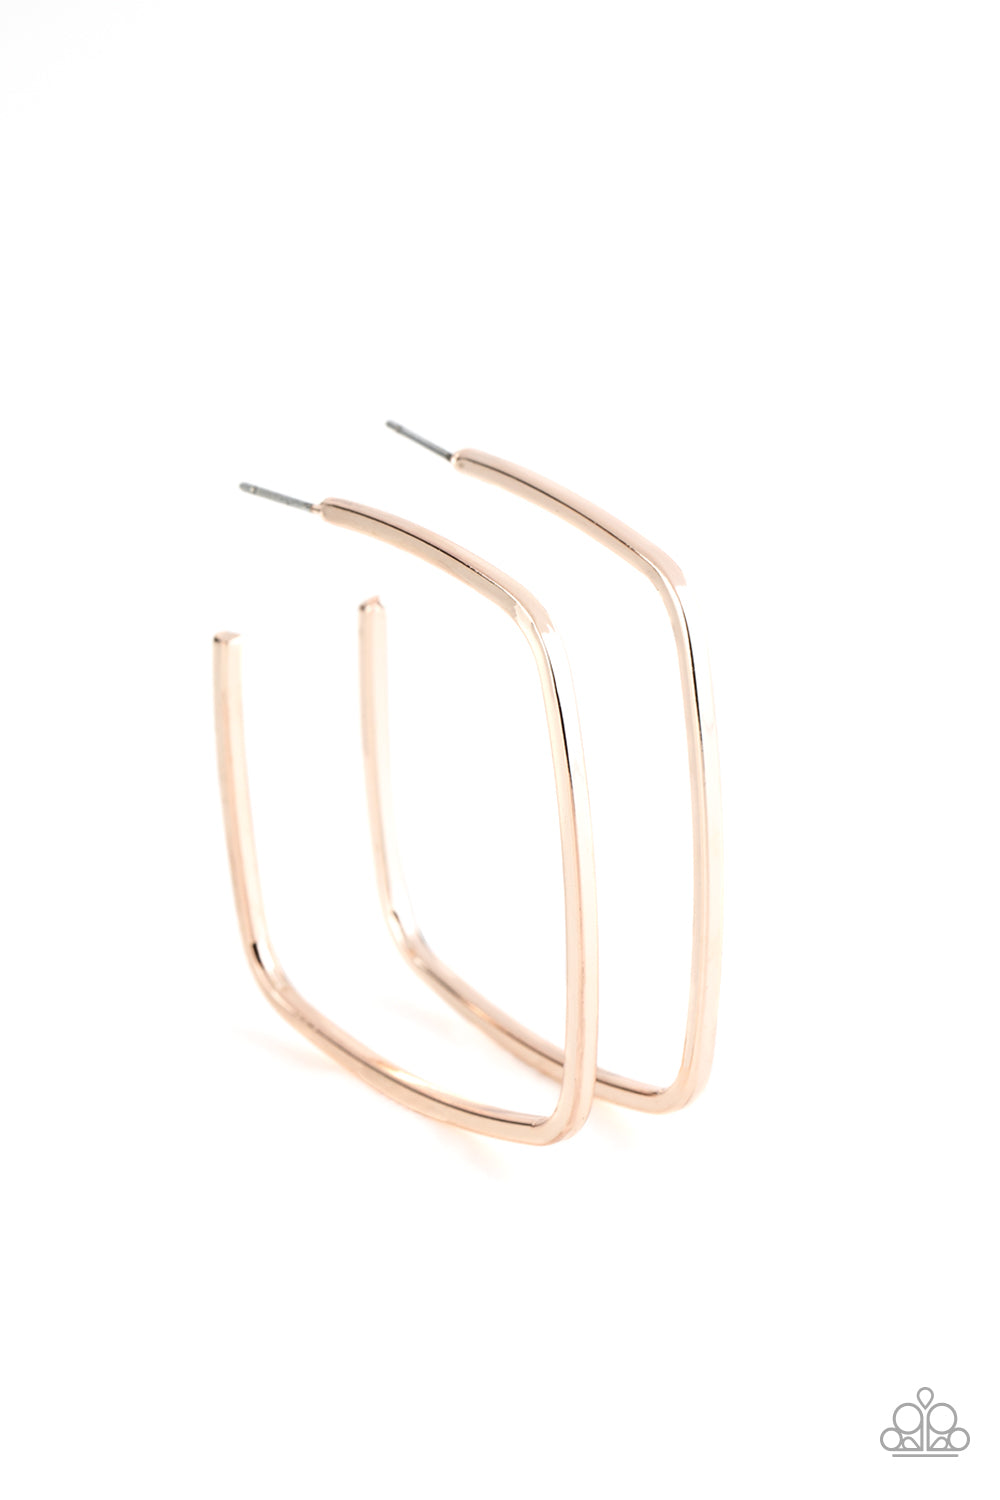 Brazen Beauty Rose Gold Earring